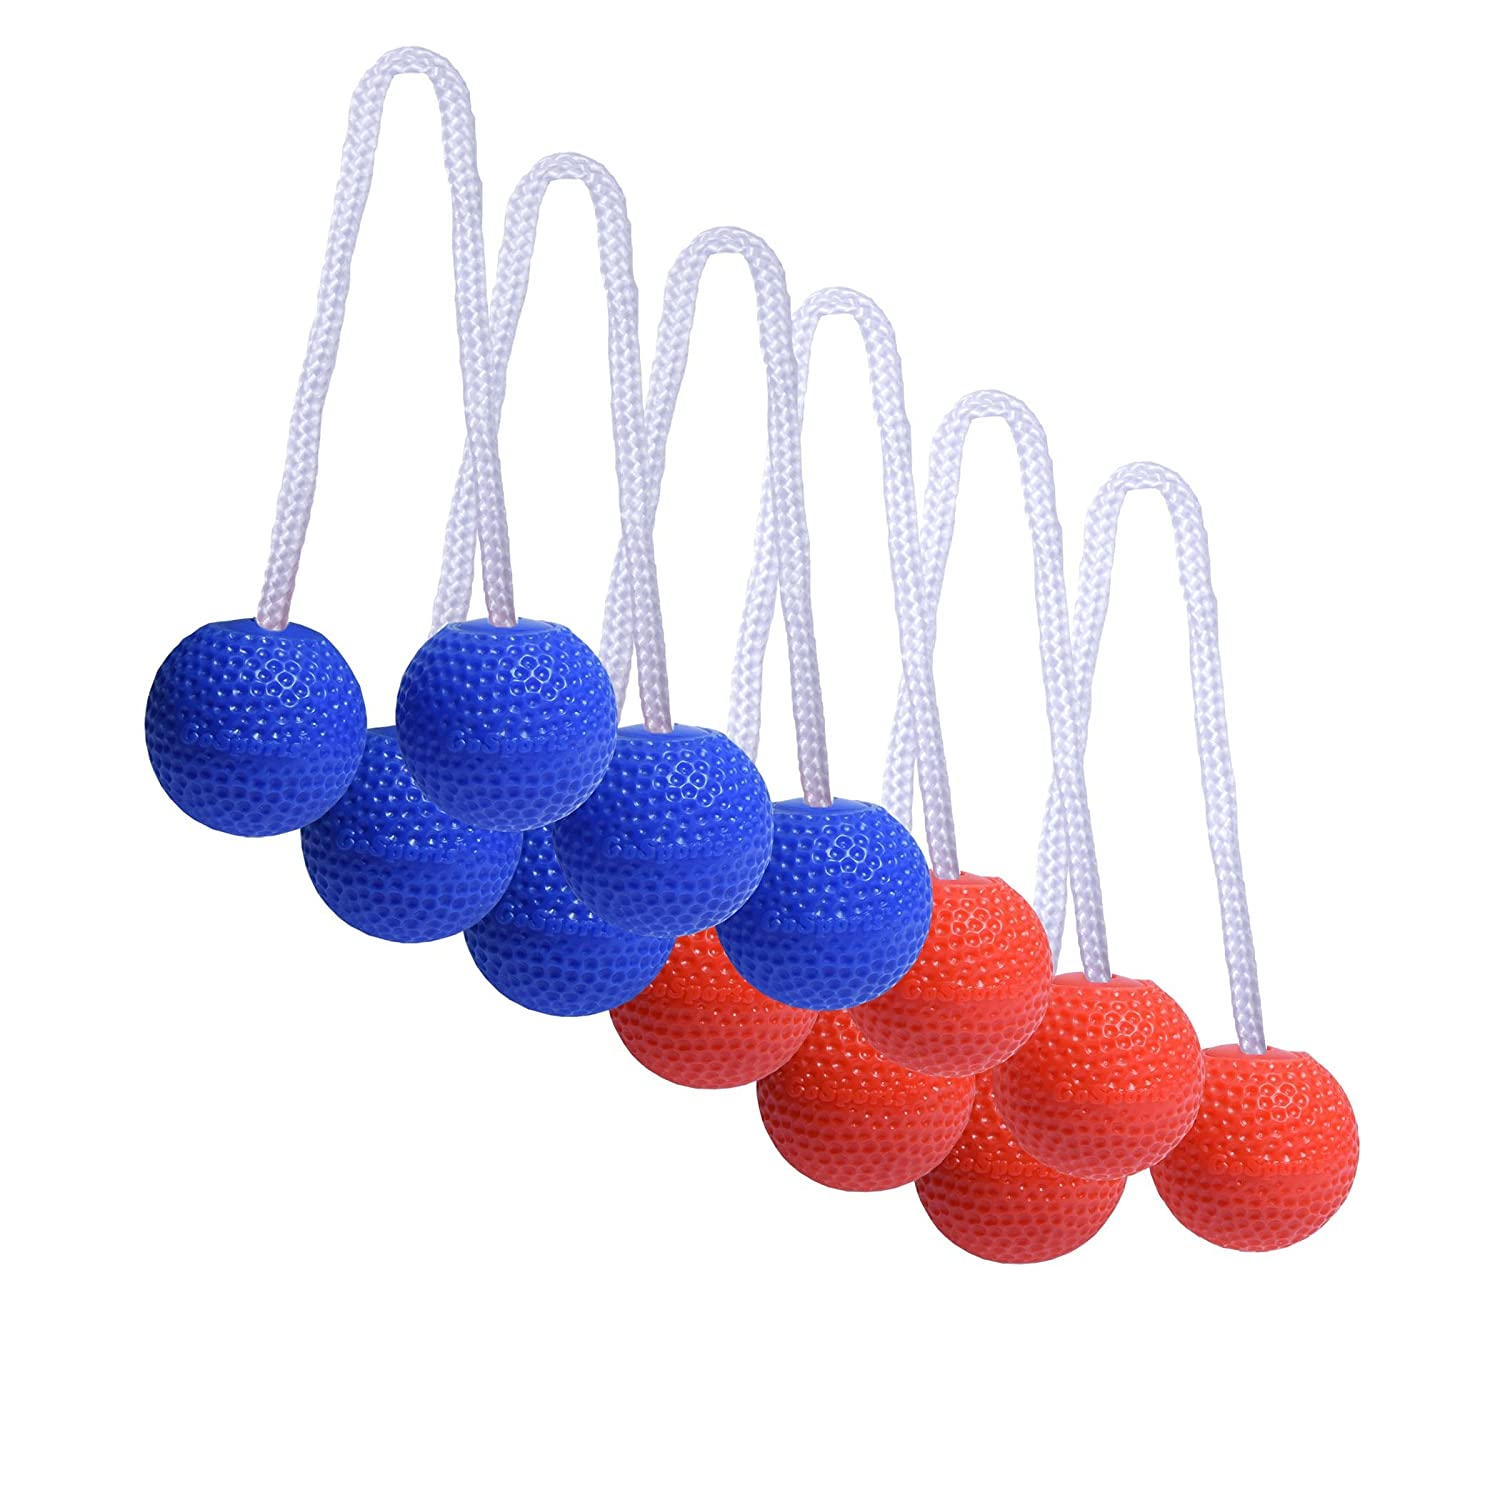 GoSports Ladder Toss Bolo Replacement Set - Kid Safe Soft Rubber or Hard Golf Balls | Choose Your Style